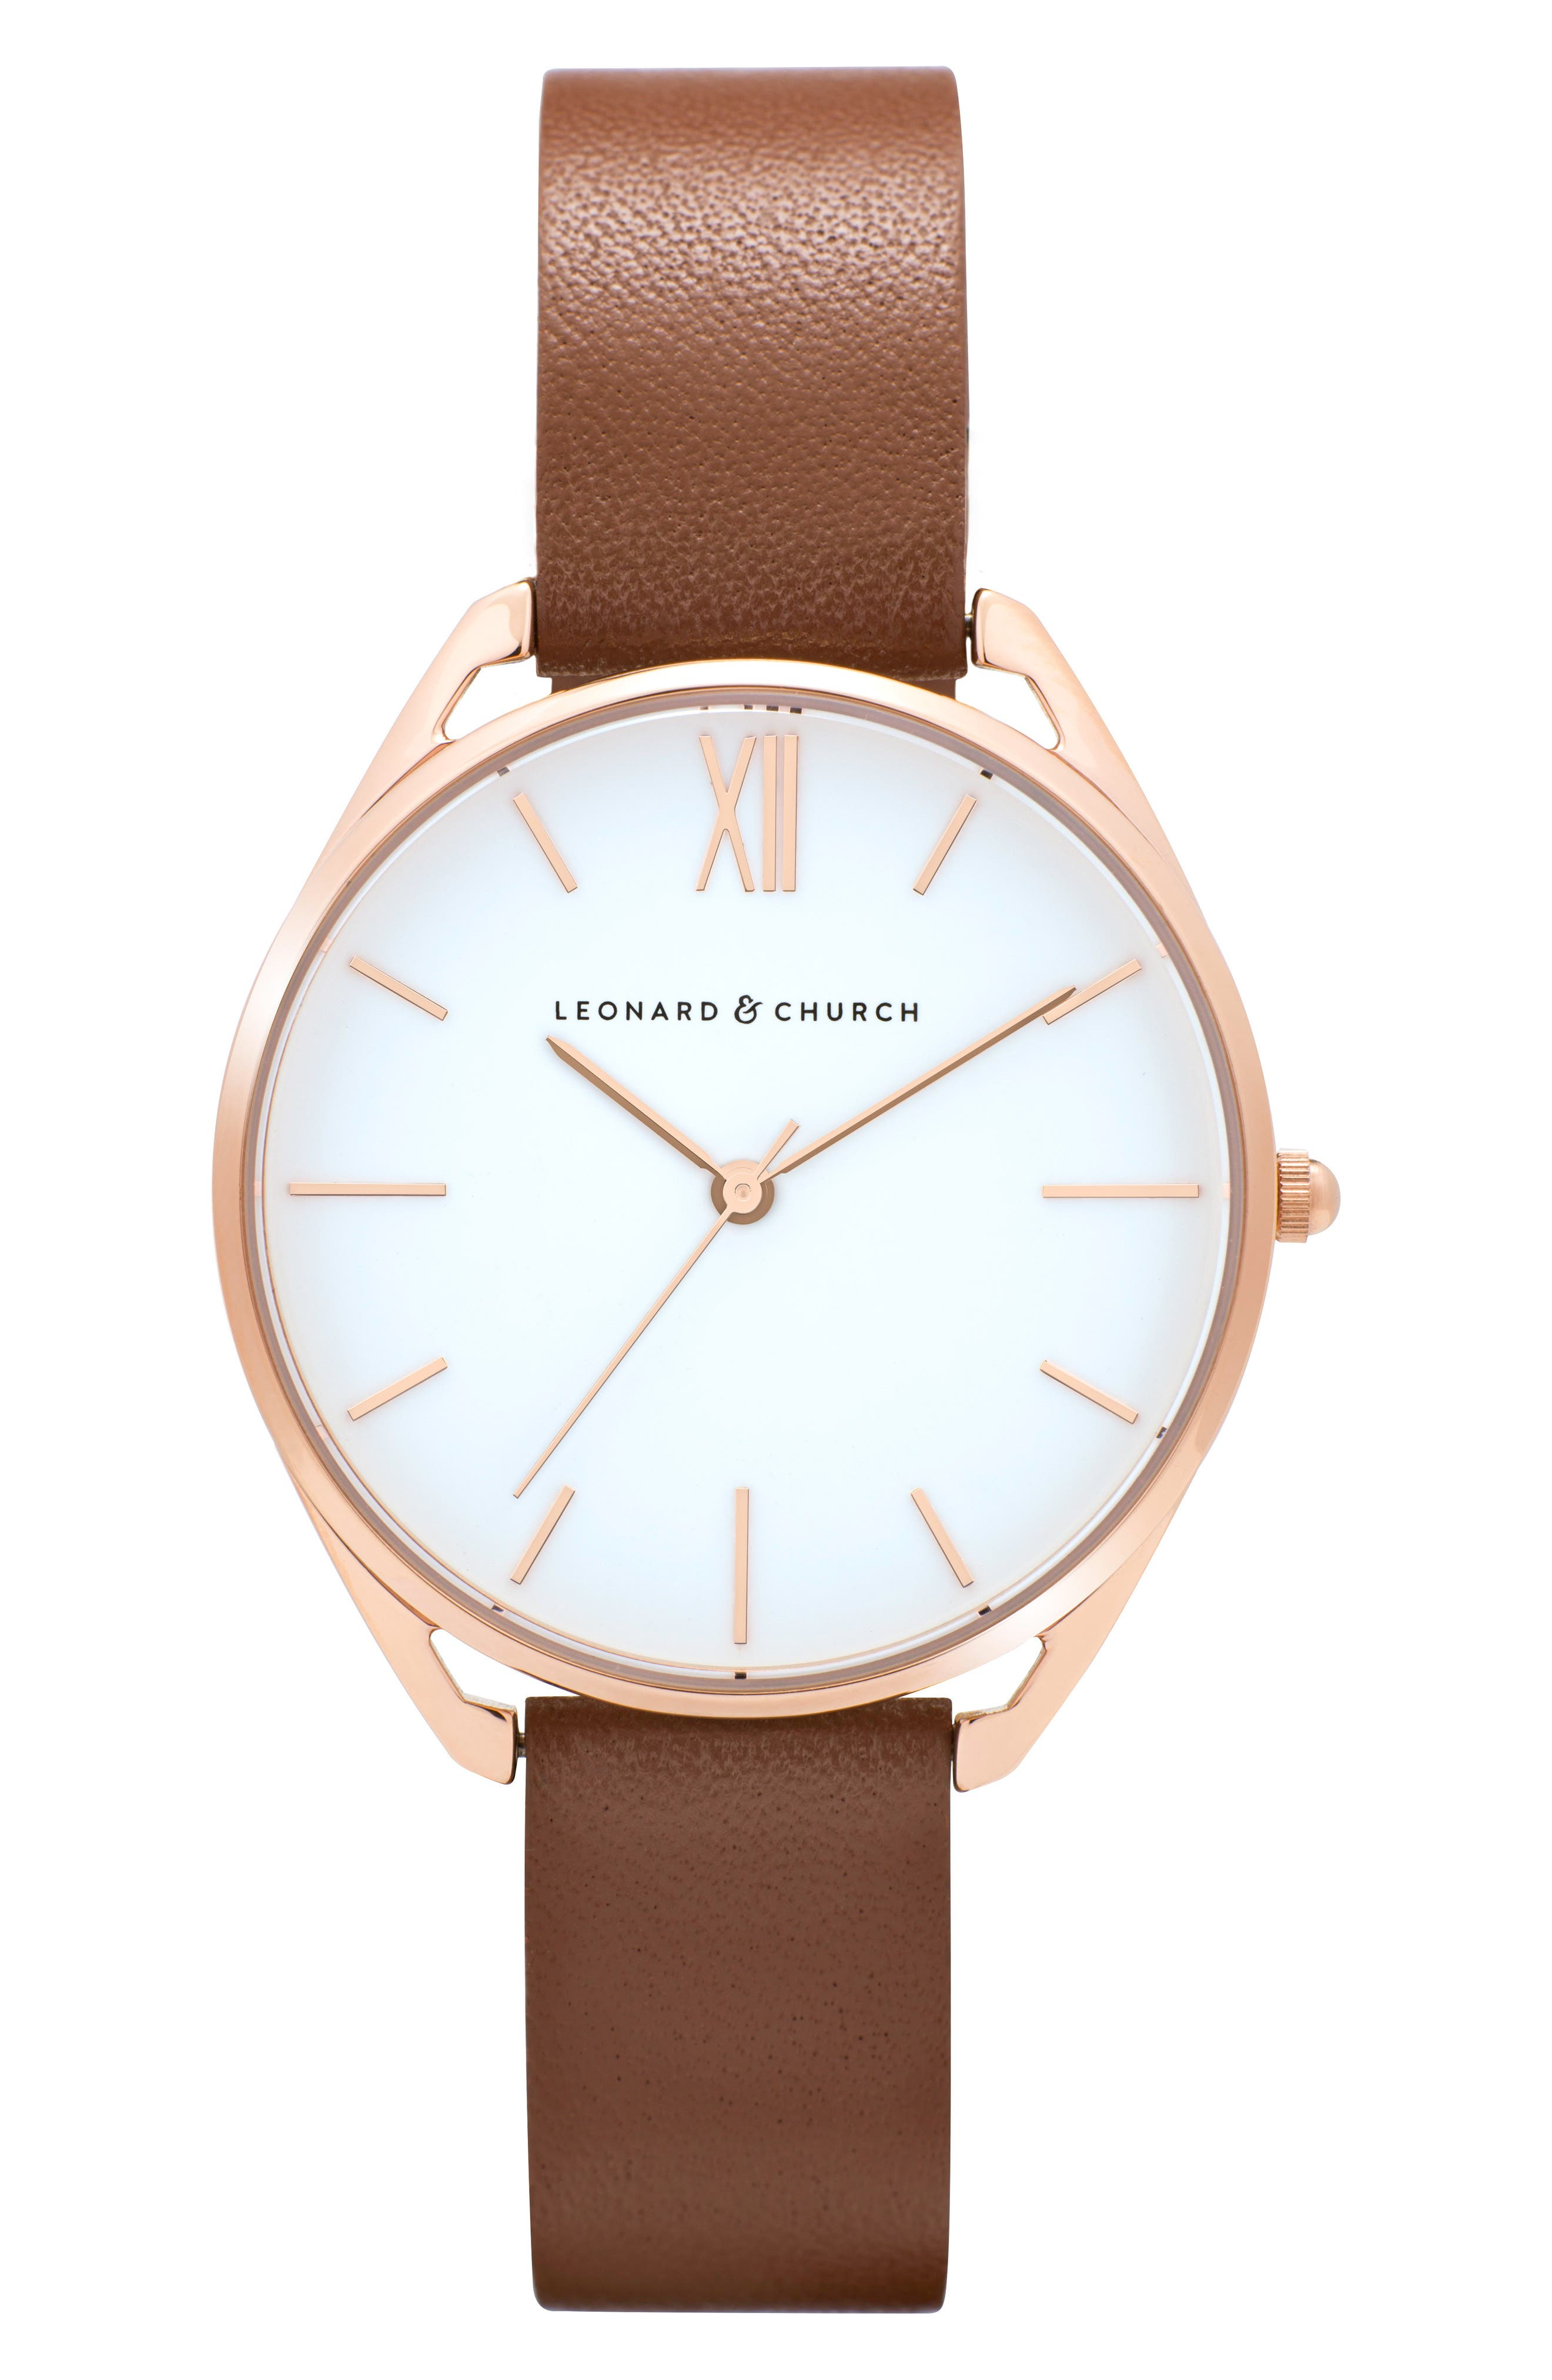 Leonard & Church Chelsea Leather Strap Watch, 34mm,                         Main,                         color, Brown/ White/ Rose Gold